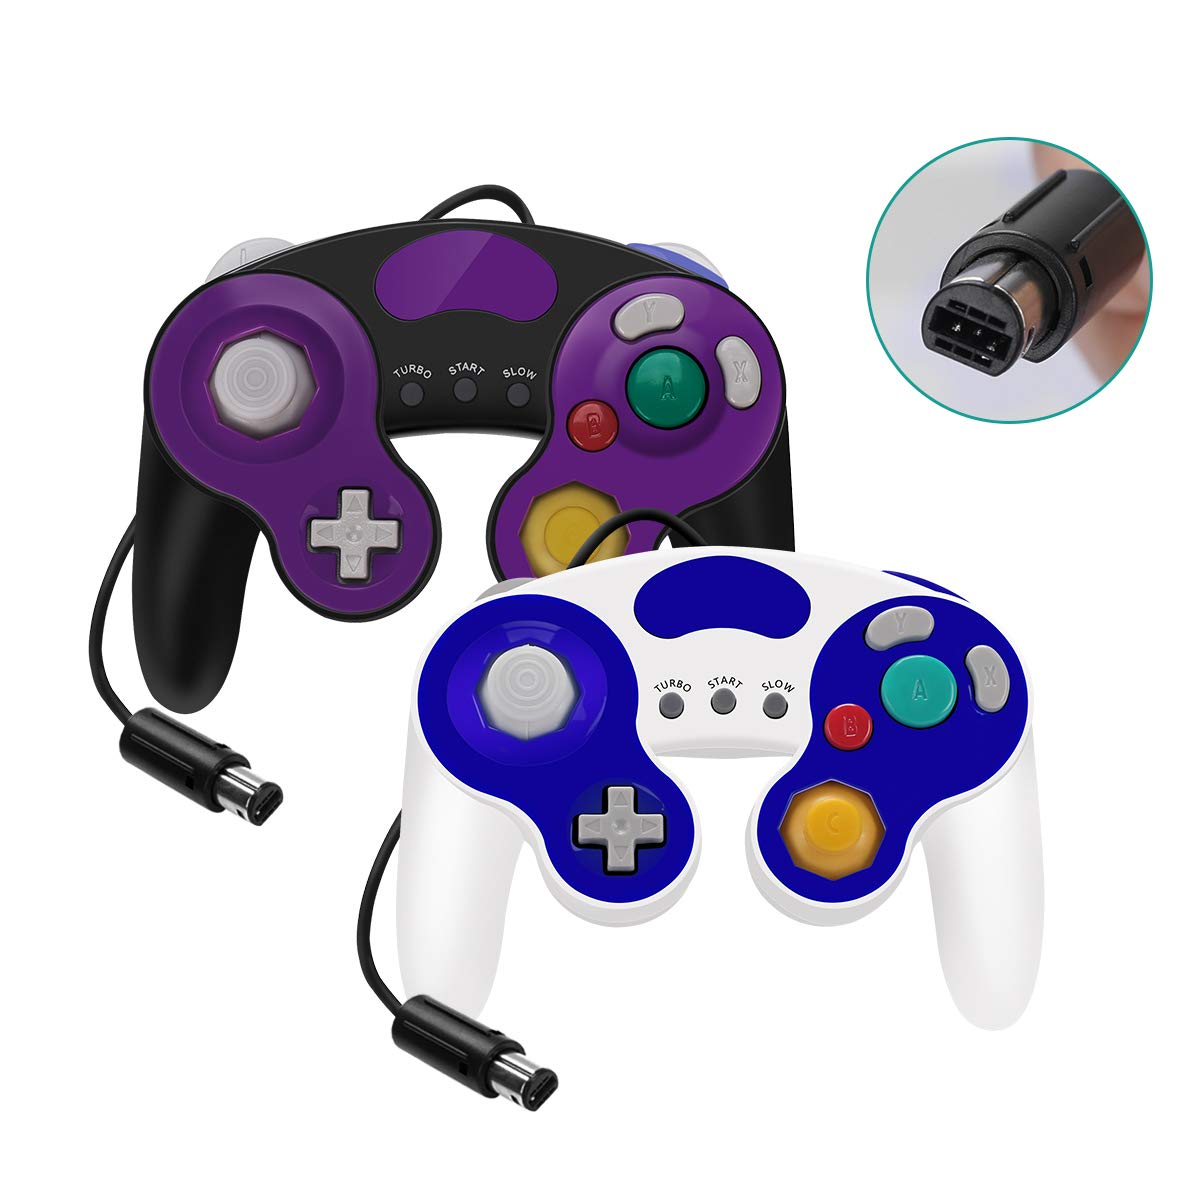 YAEYE Gamecube Controller with Turbo and Vibrate,No Lag/Driver,2 Pack Classic Wired Switch Gamecube Controllers for Nintendo Switch/Wii U/Wii/PC(Black and White)